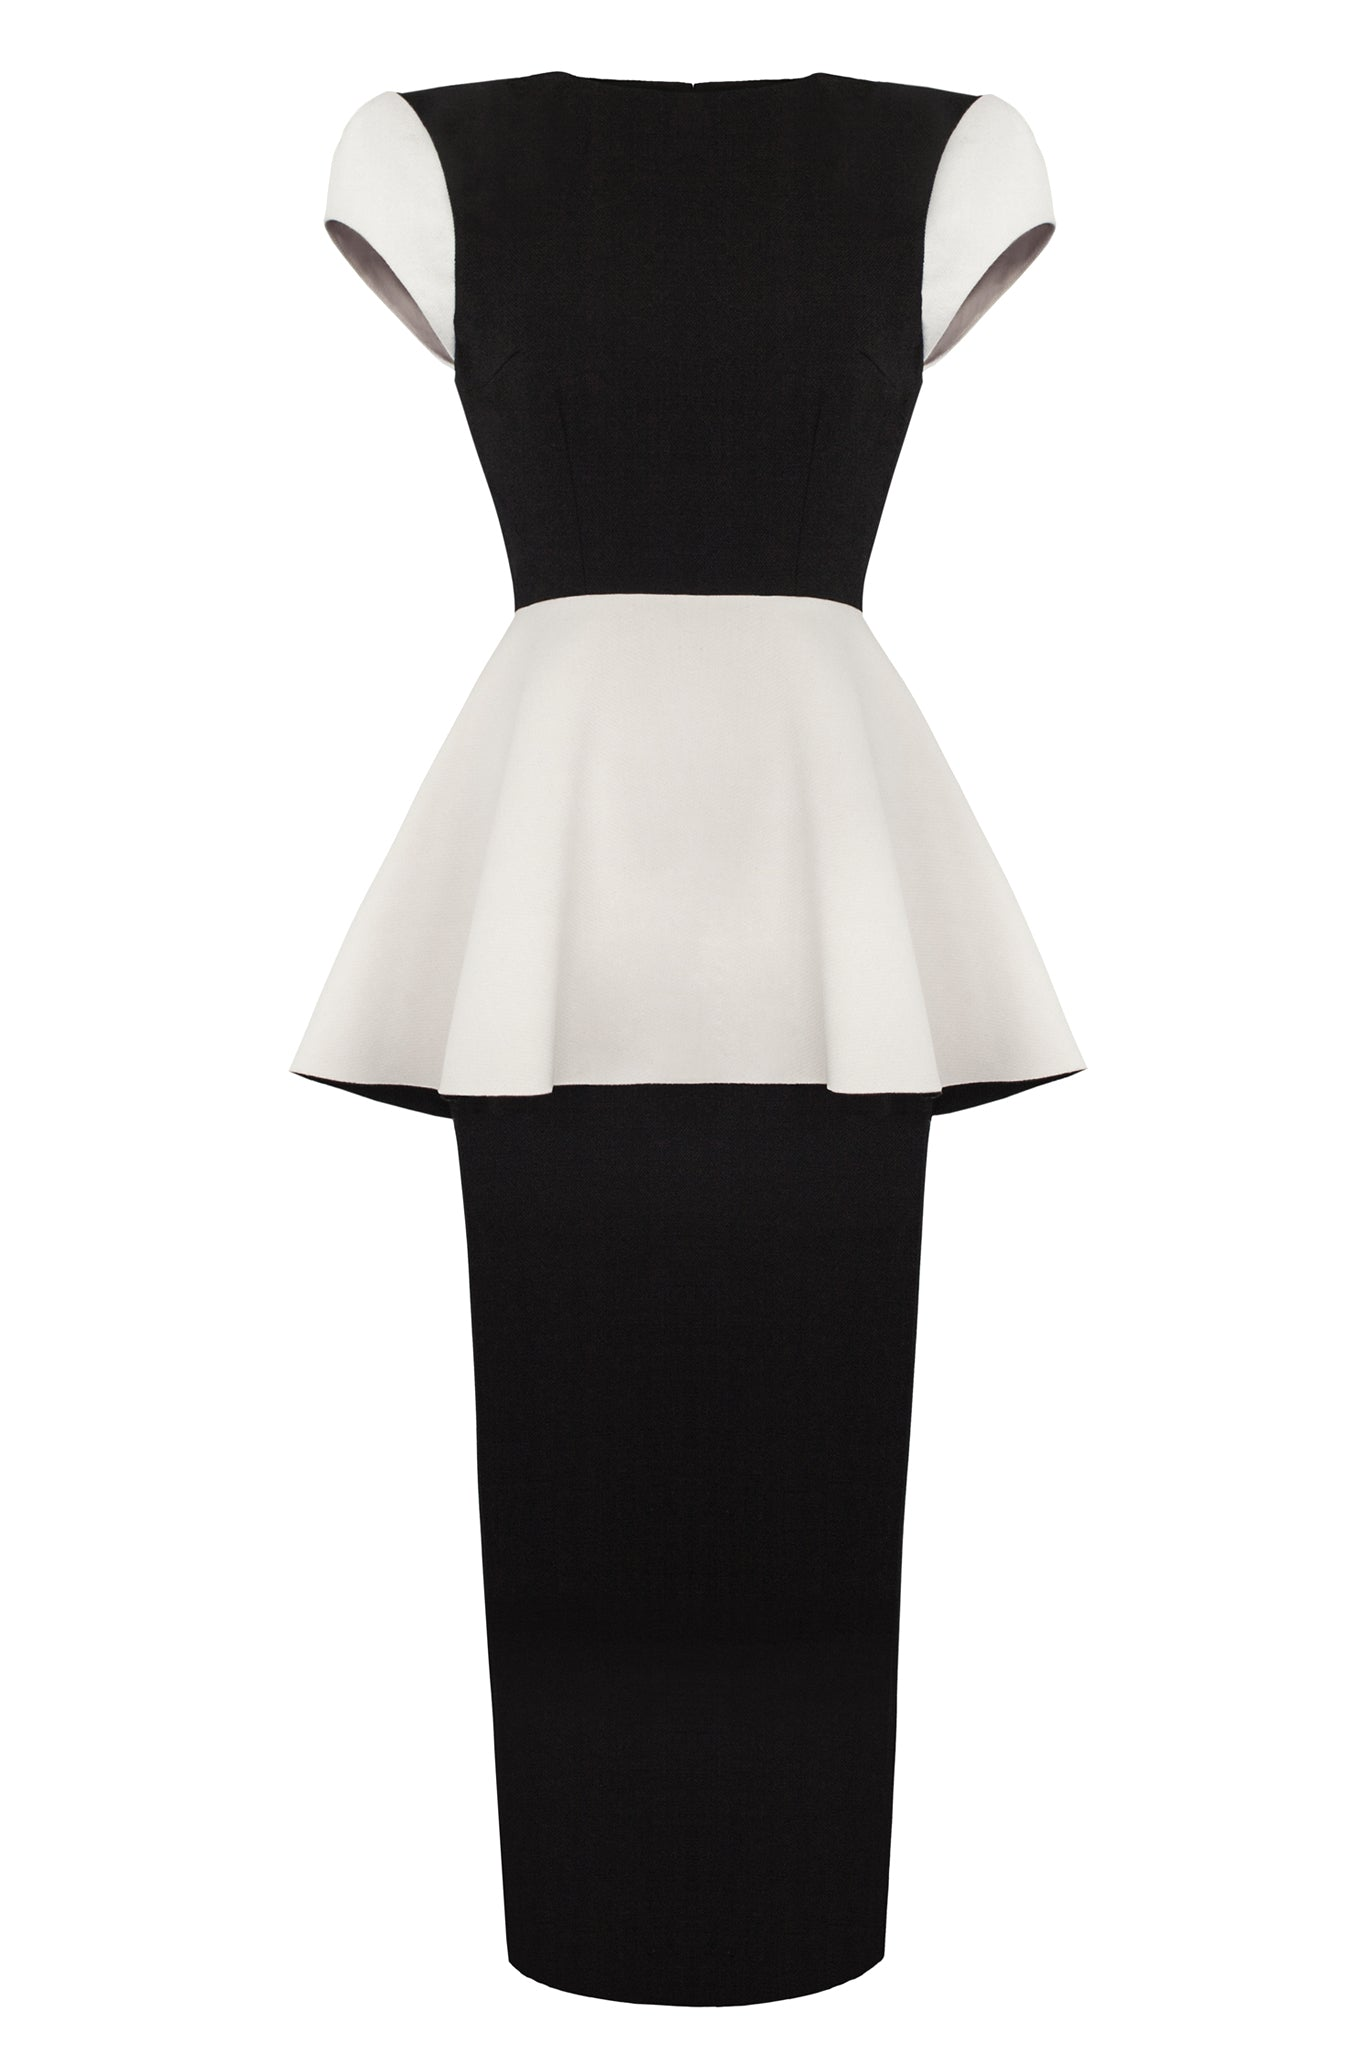 This tailored 'Spray' dress is semi-fitted and slimline to the ankle, with an elongated back vent split. Featuring a capped sleeve and angled beige peplum.